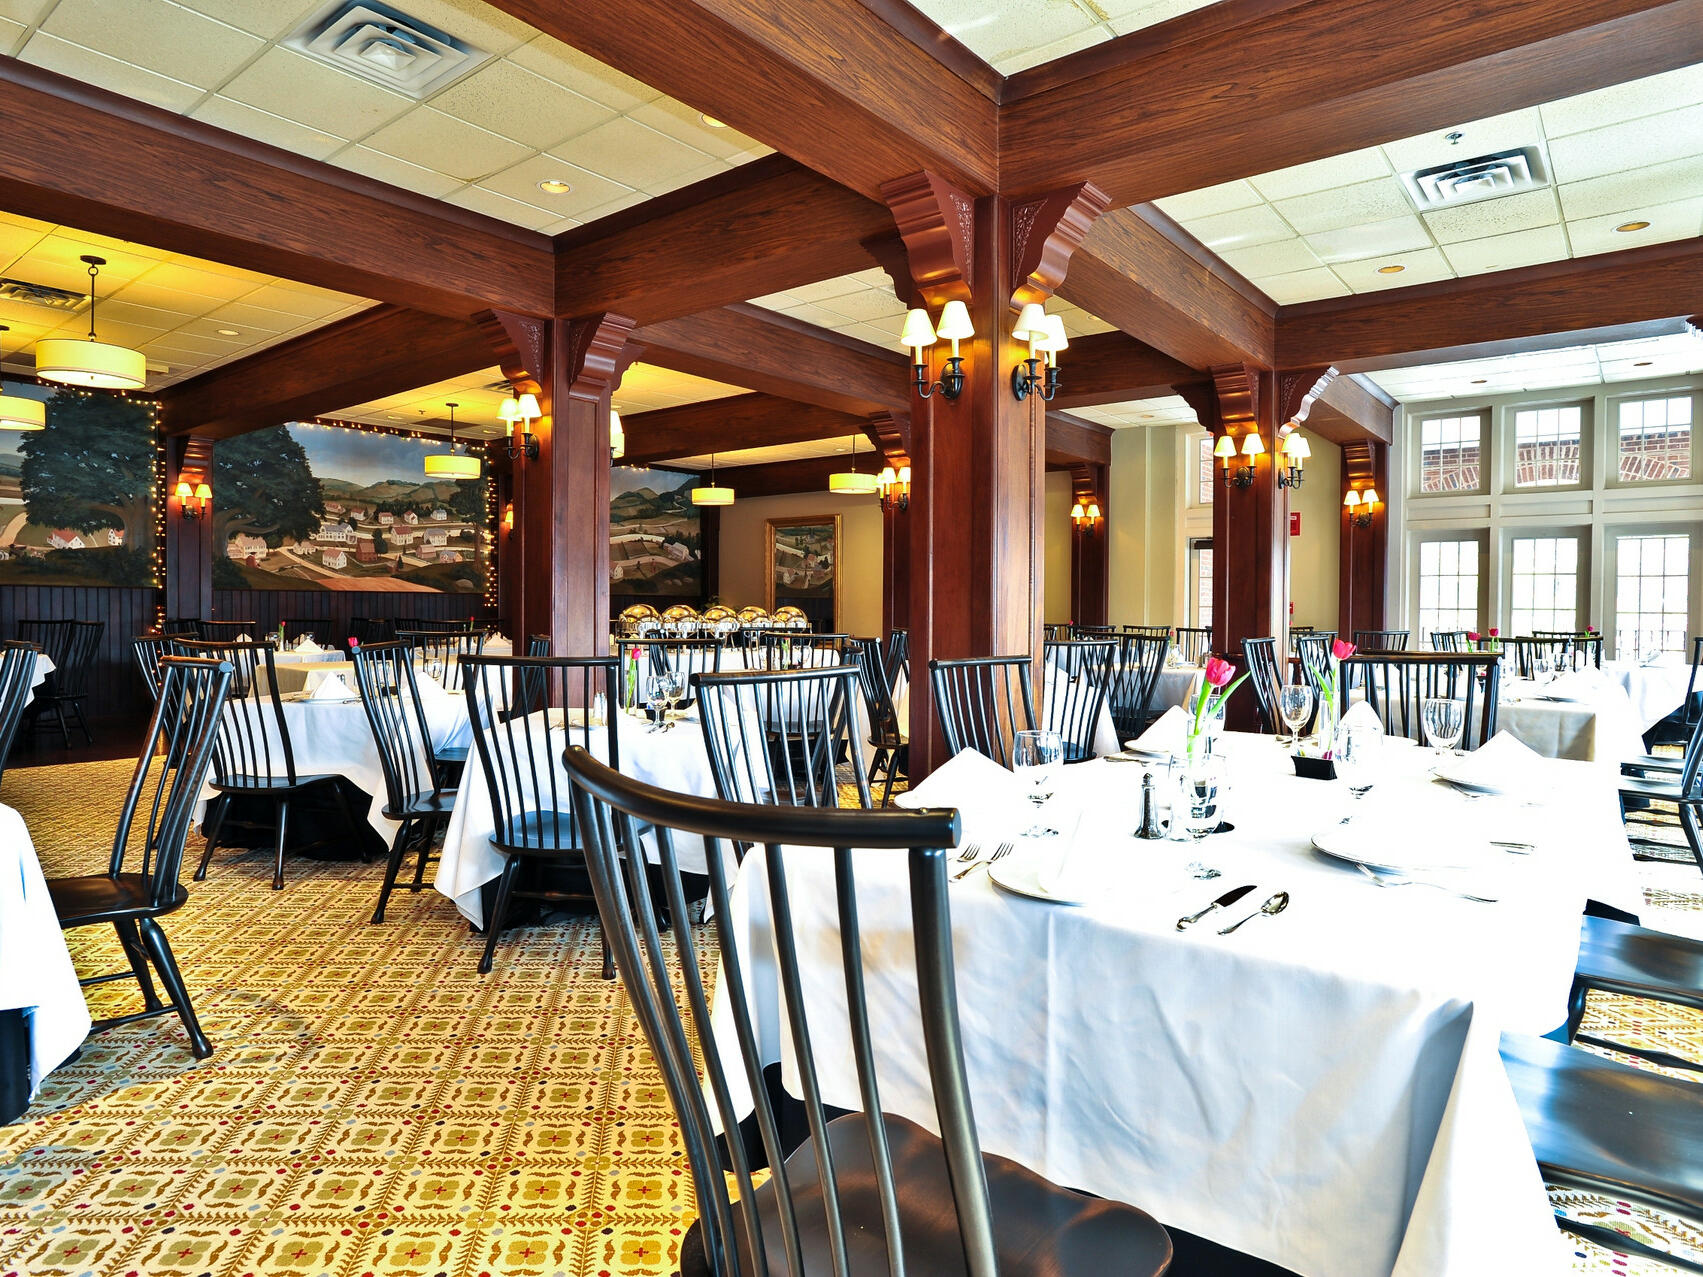 Interior view of Evergreens Main Dining Room at The Simsbury Inn